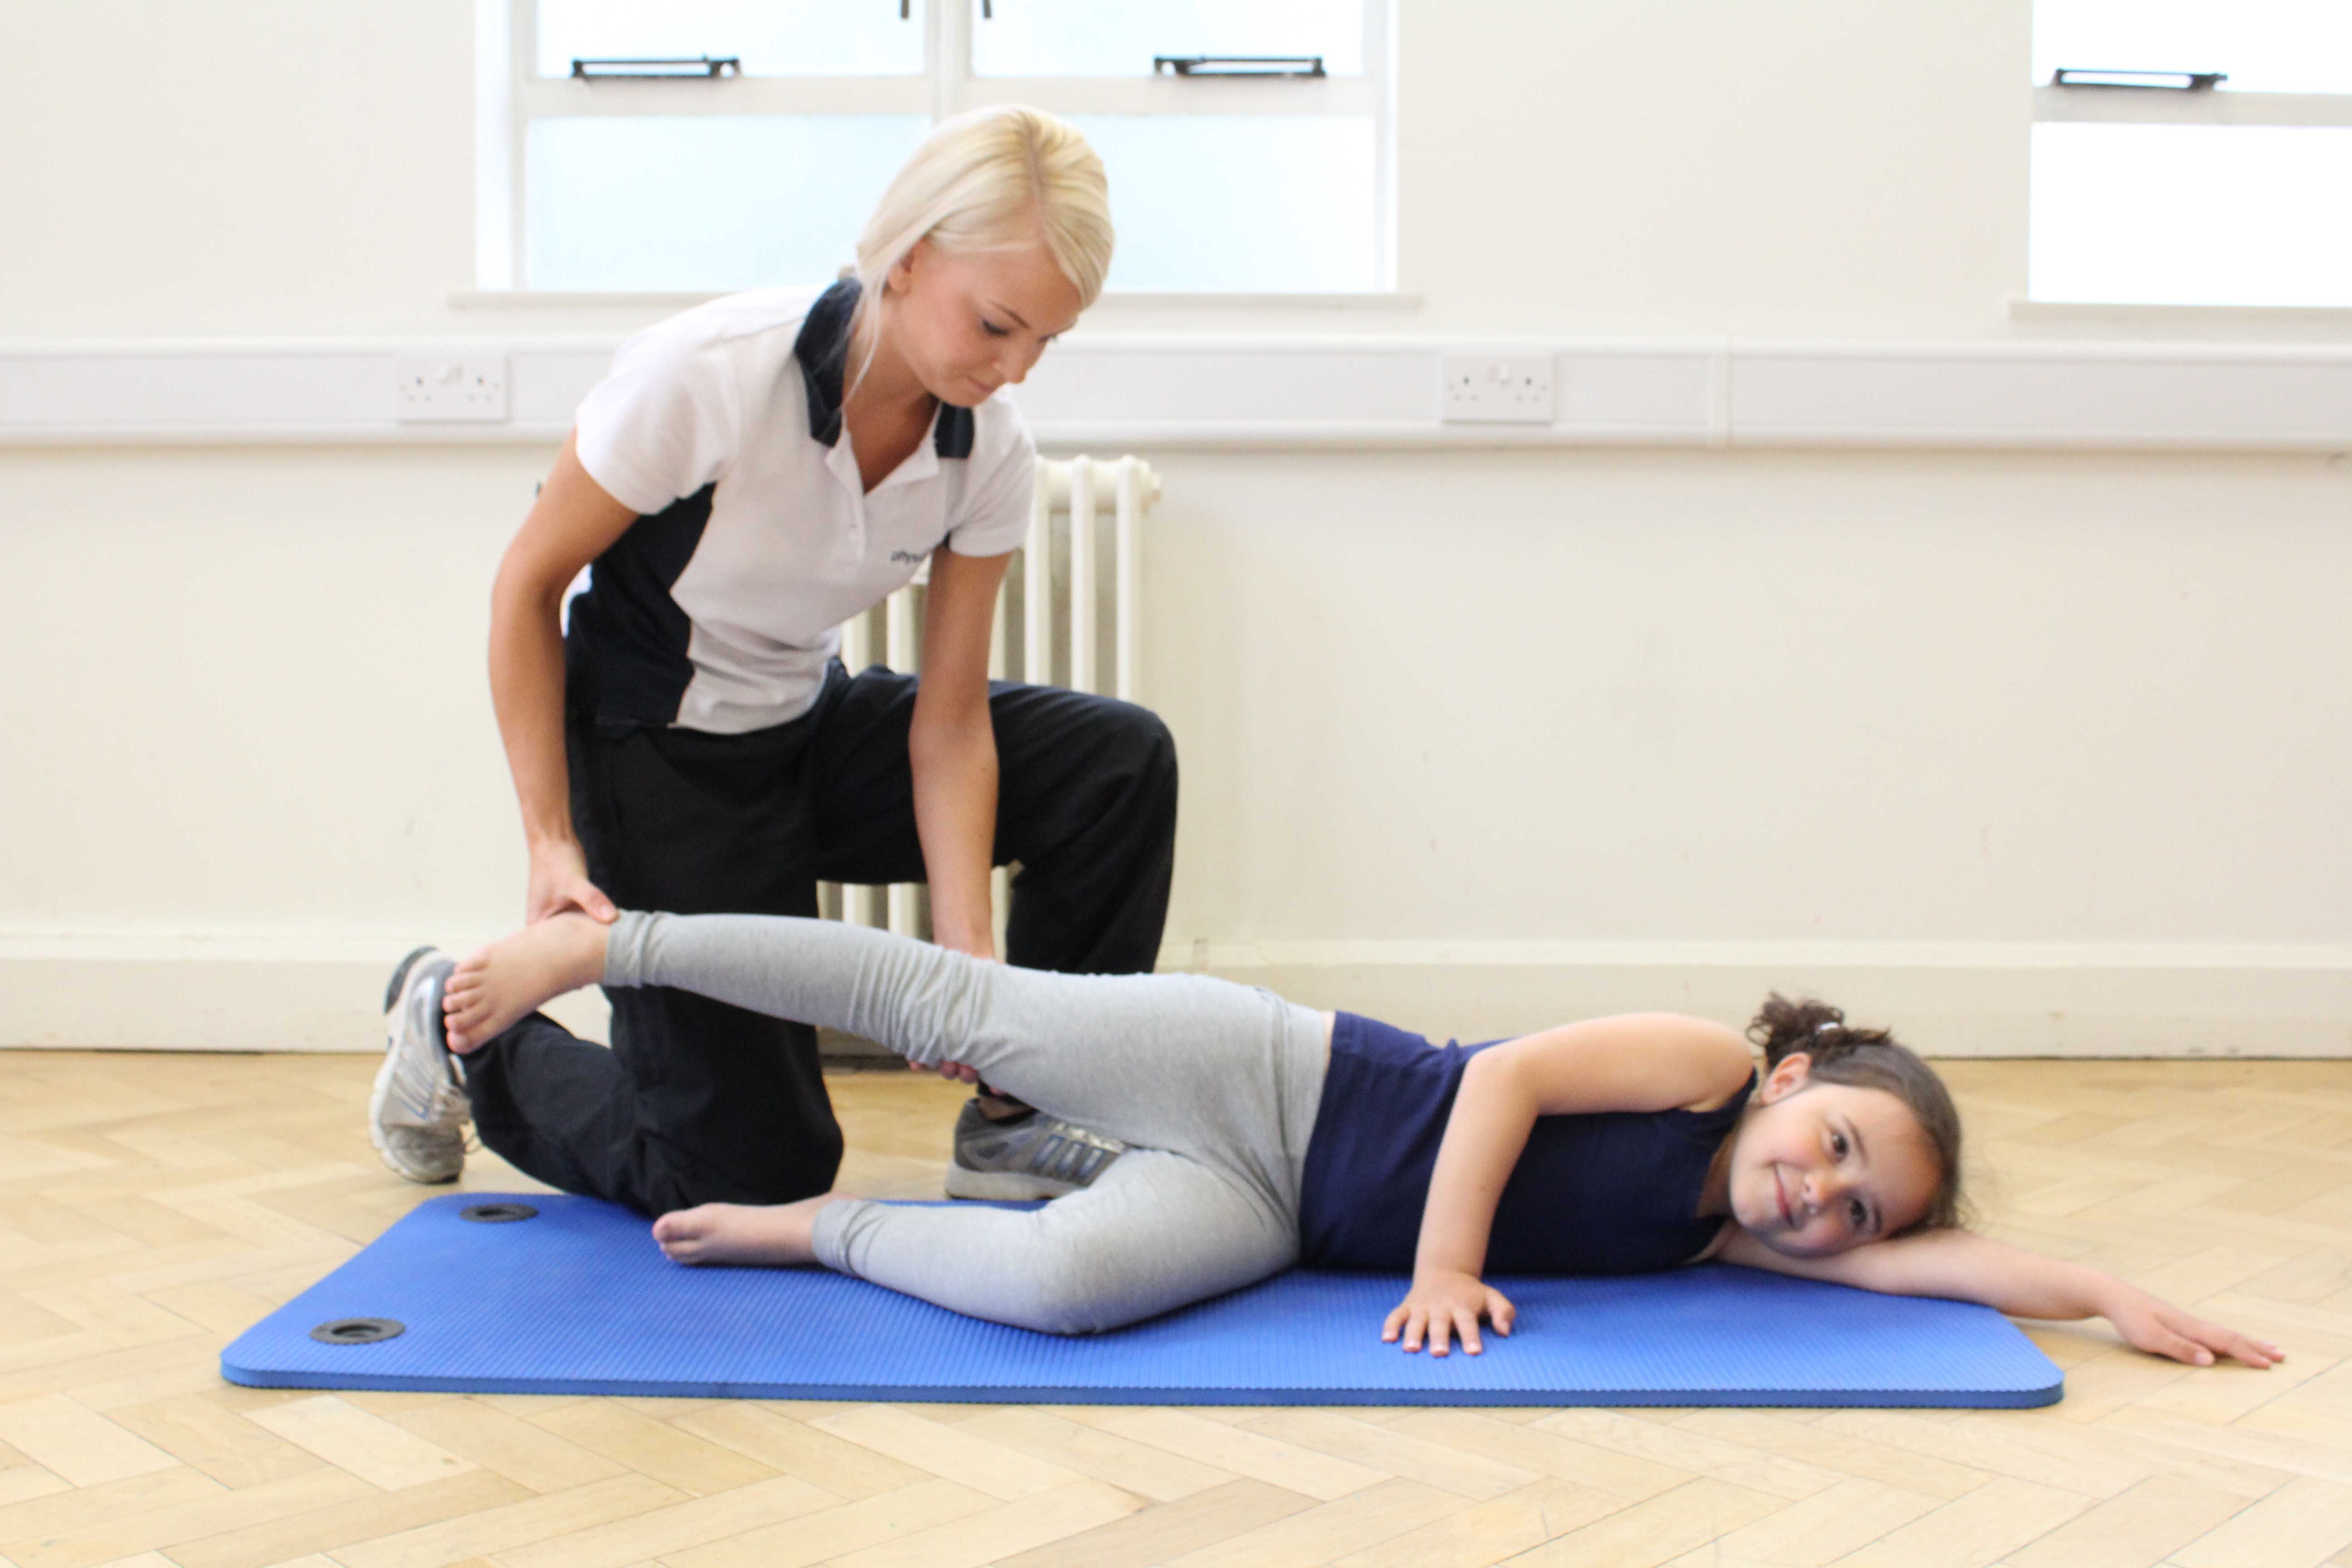 Toning and strengthening exercises to stabilise the joints